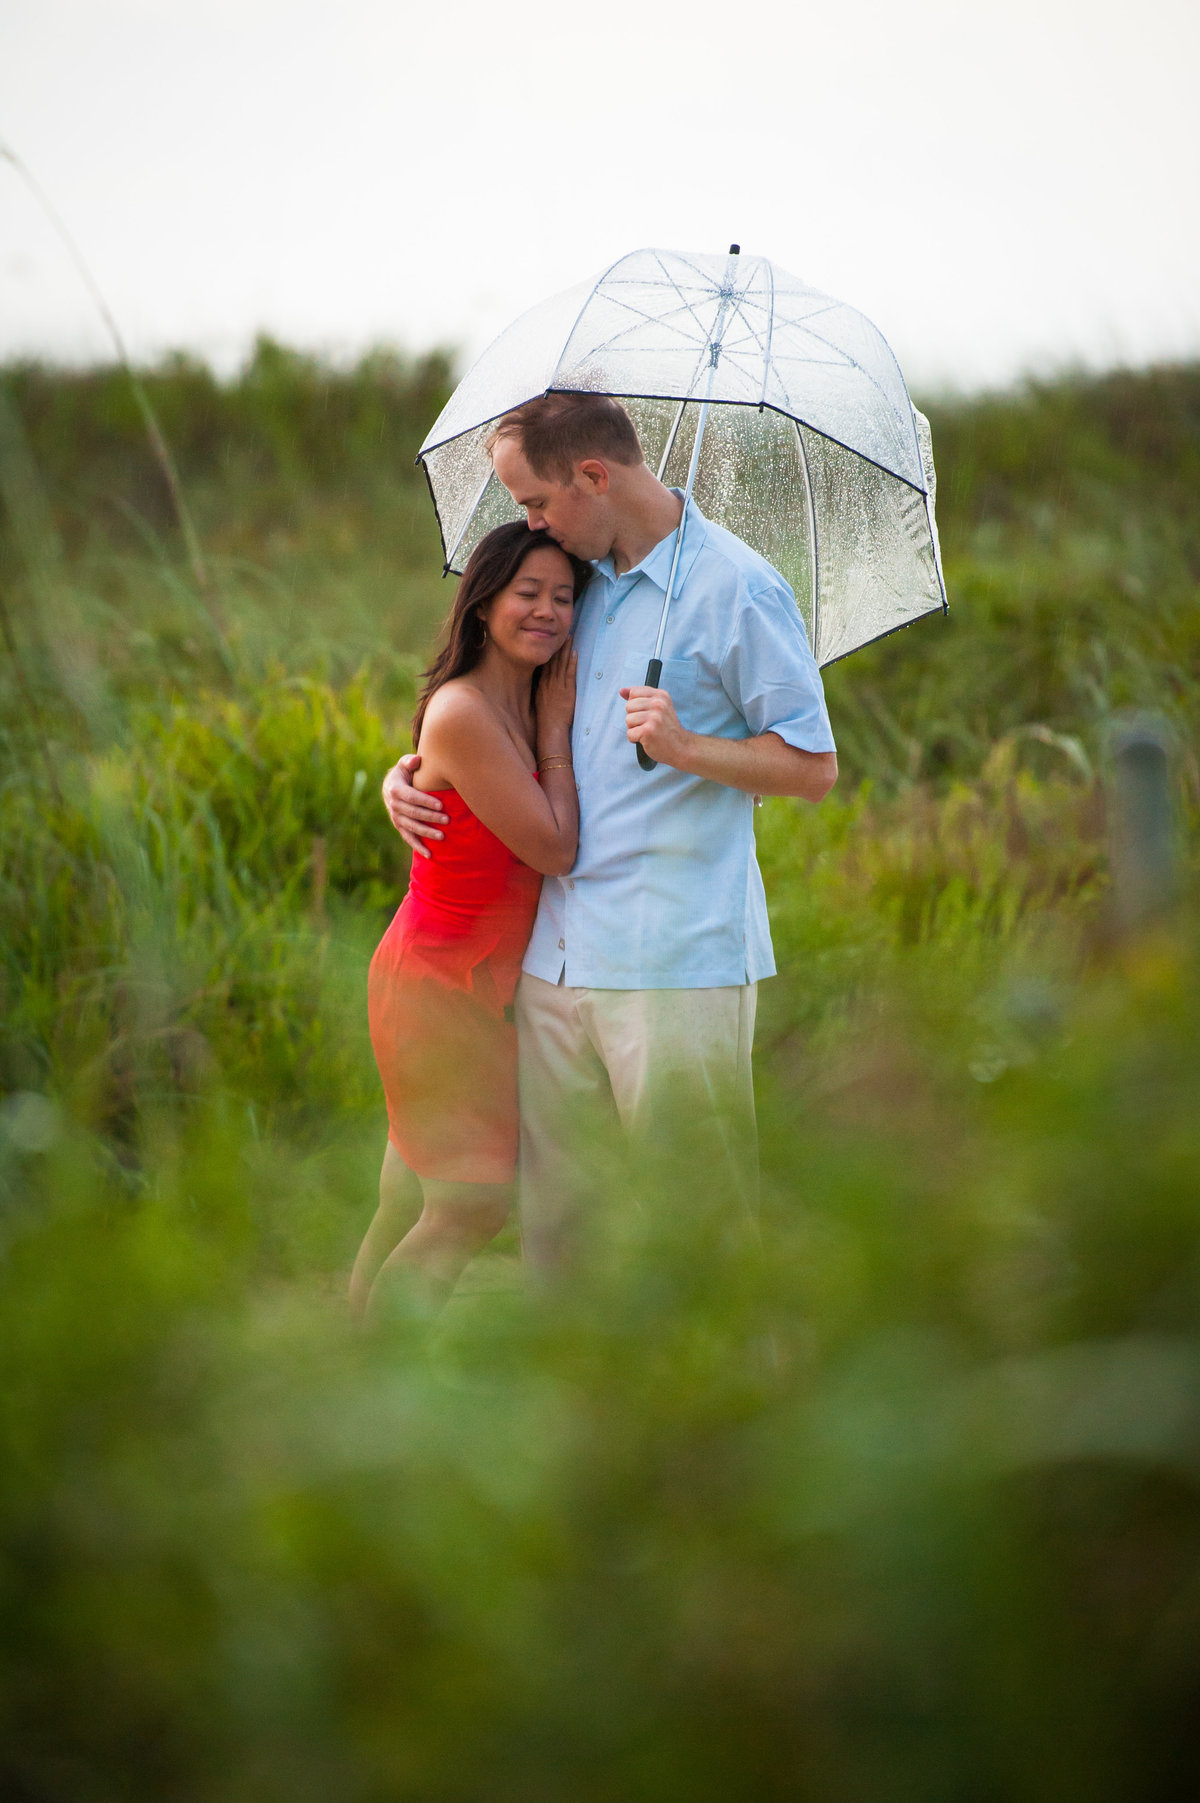 Daytona Beach engagement photography (5)